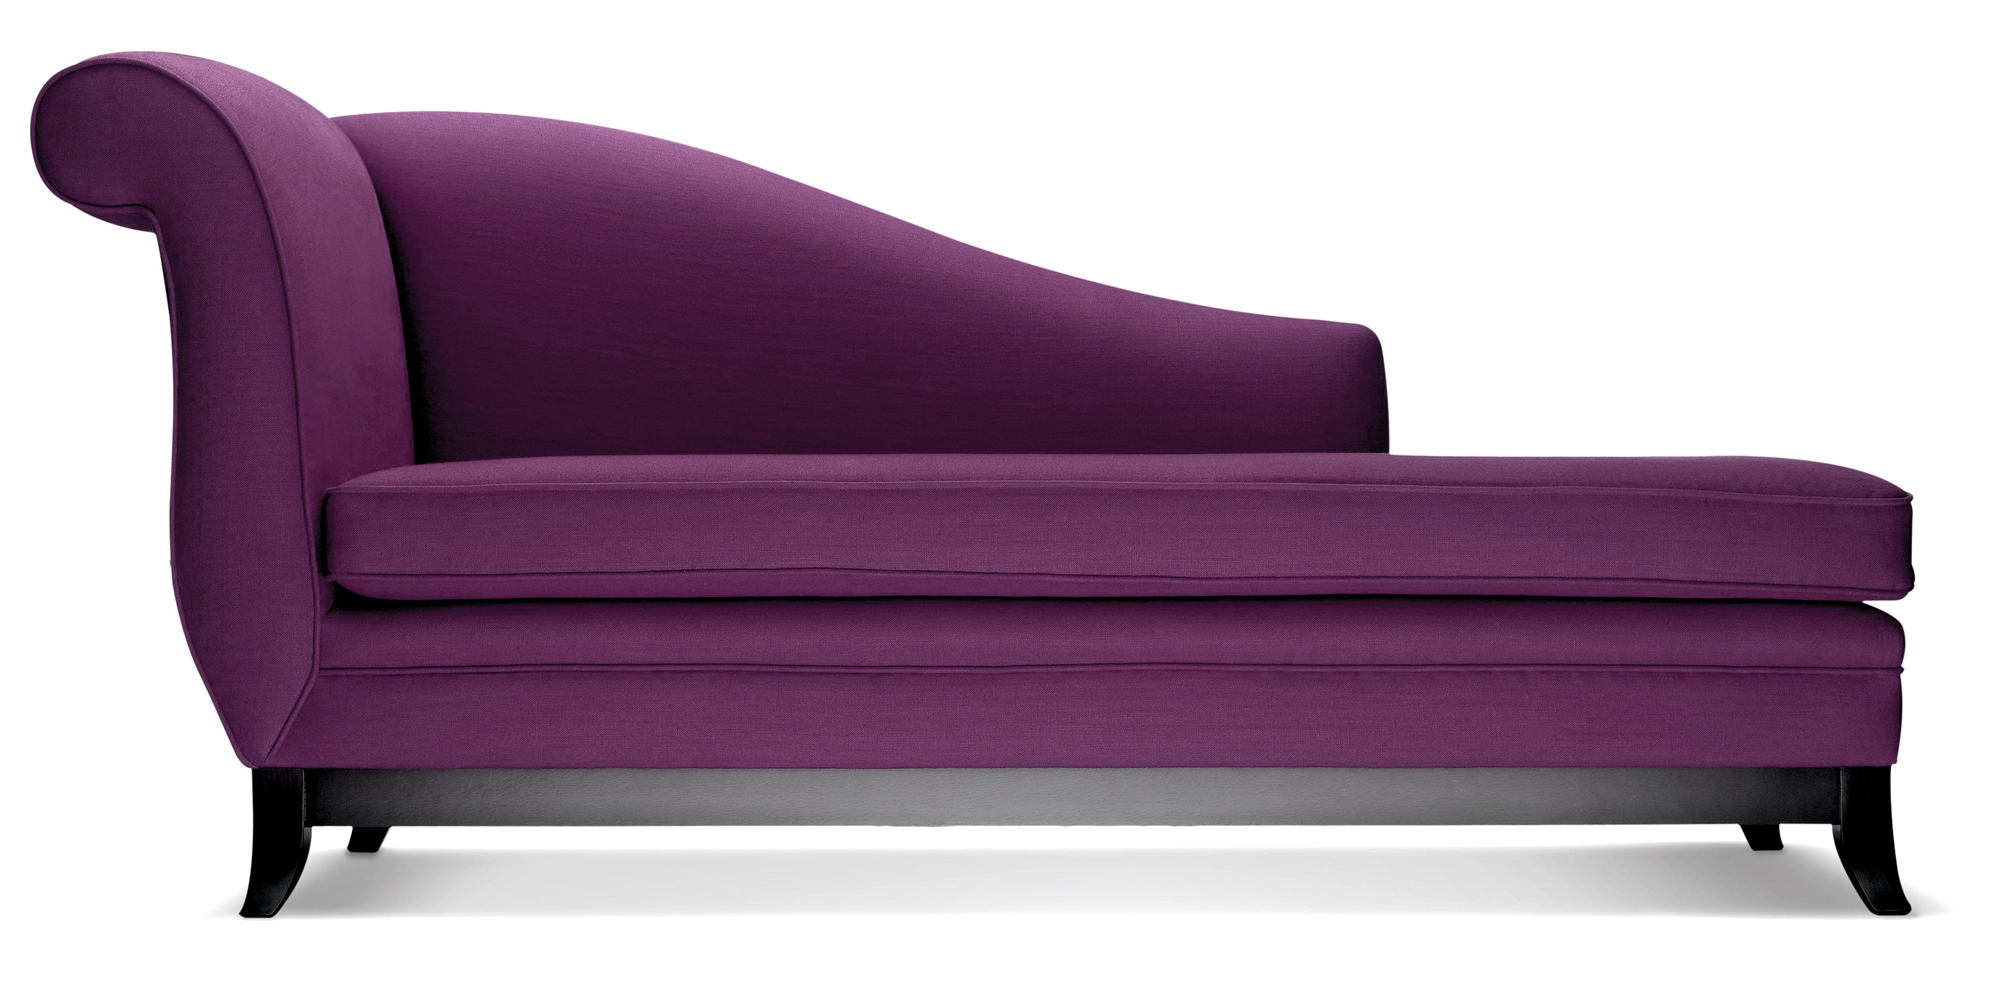 Sofa Beach Style Purple Velvet Tufted Hudson Home Decor Backless With Regard To Backless Chaise Sofa (Image 15 of 15)